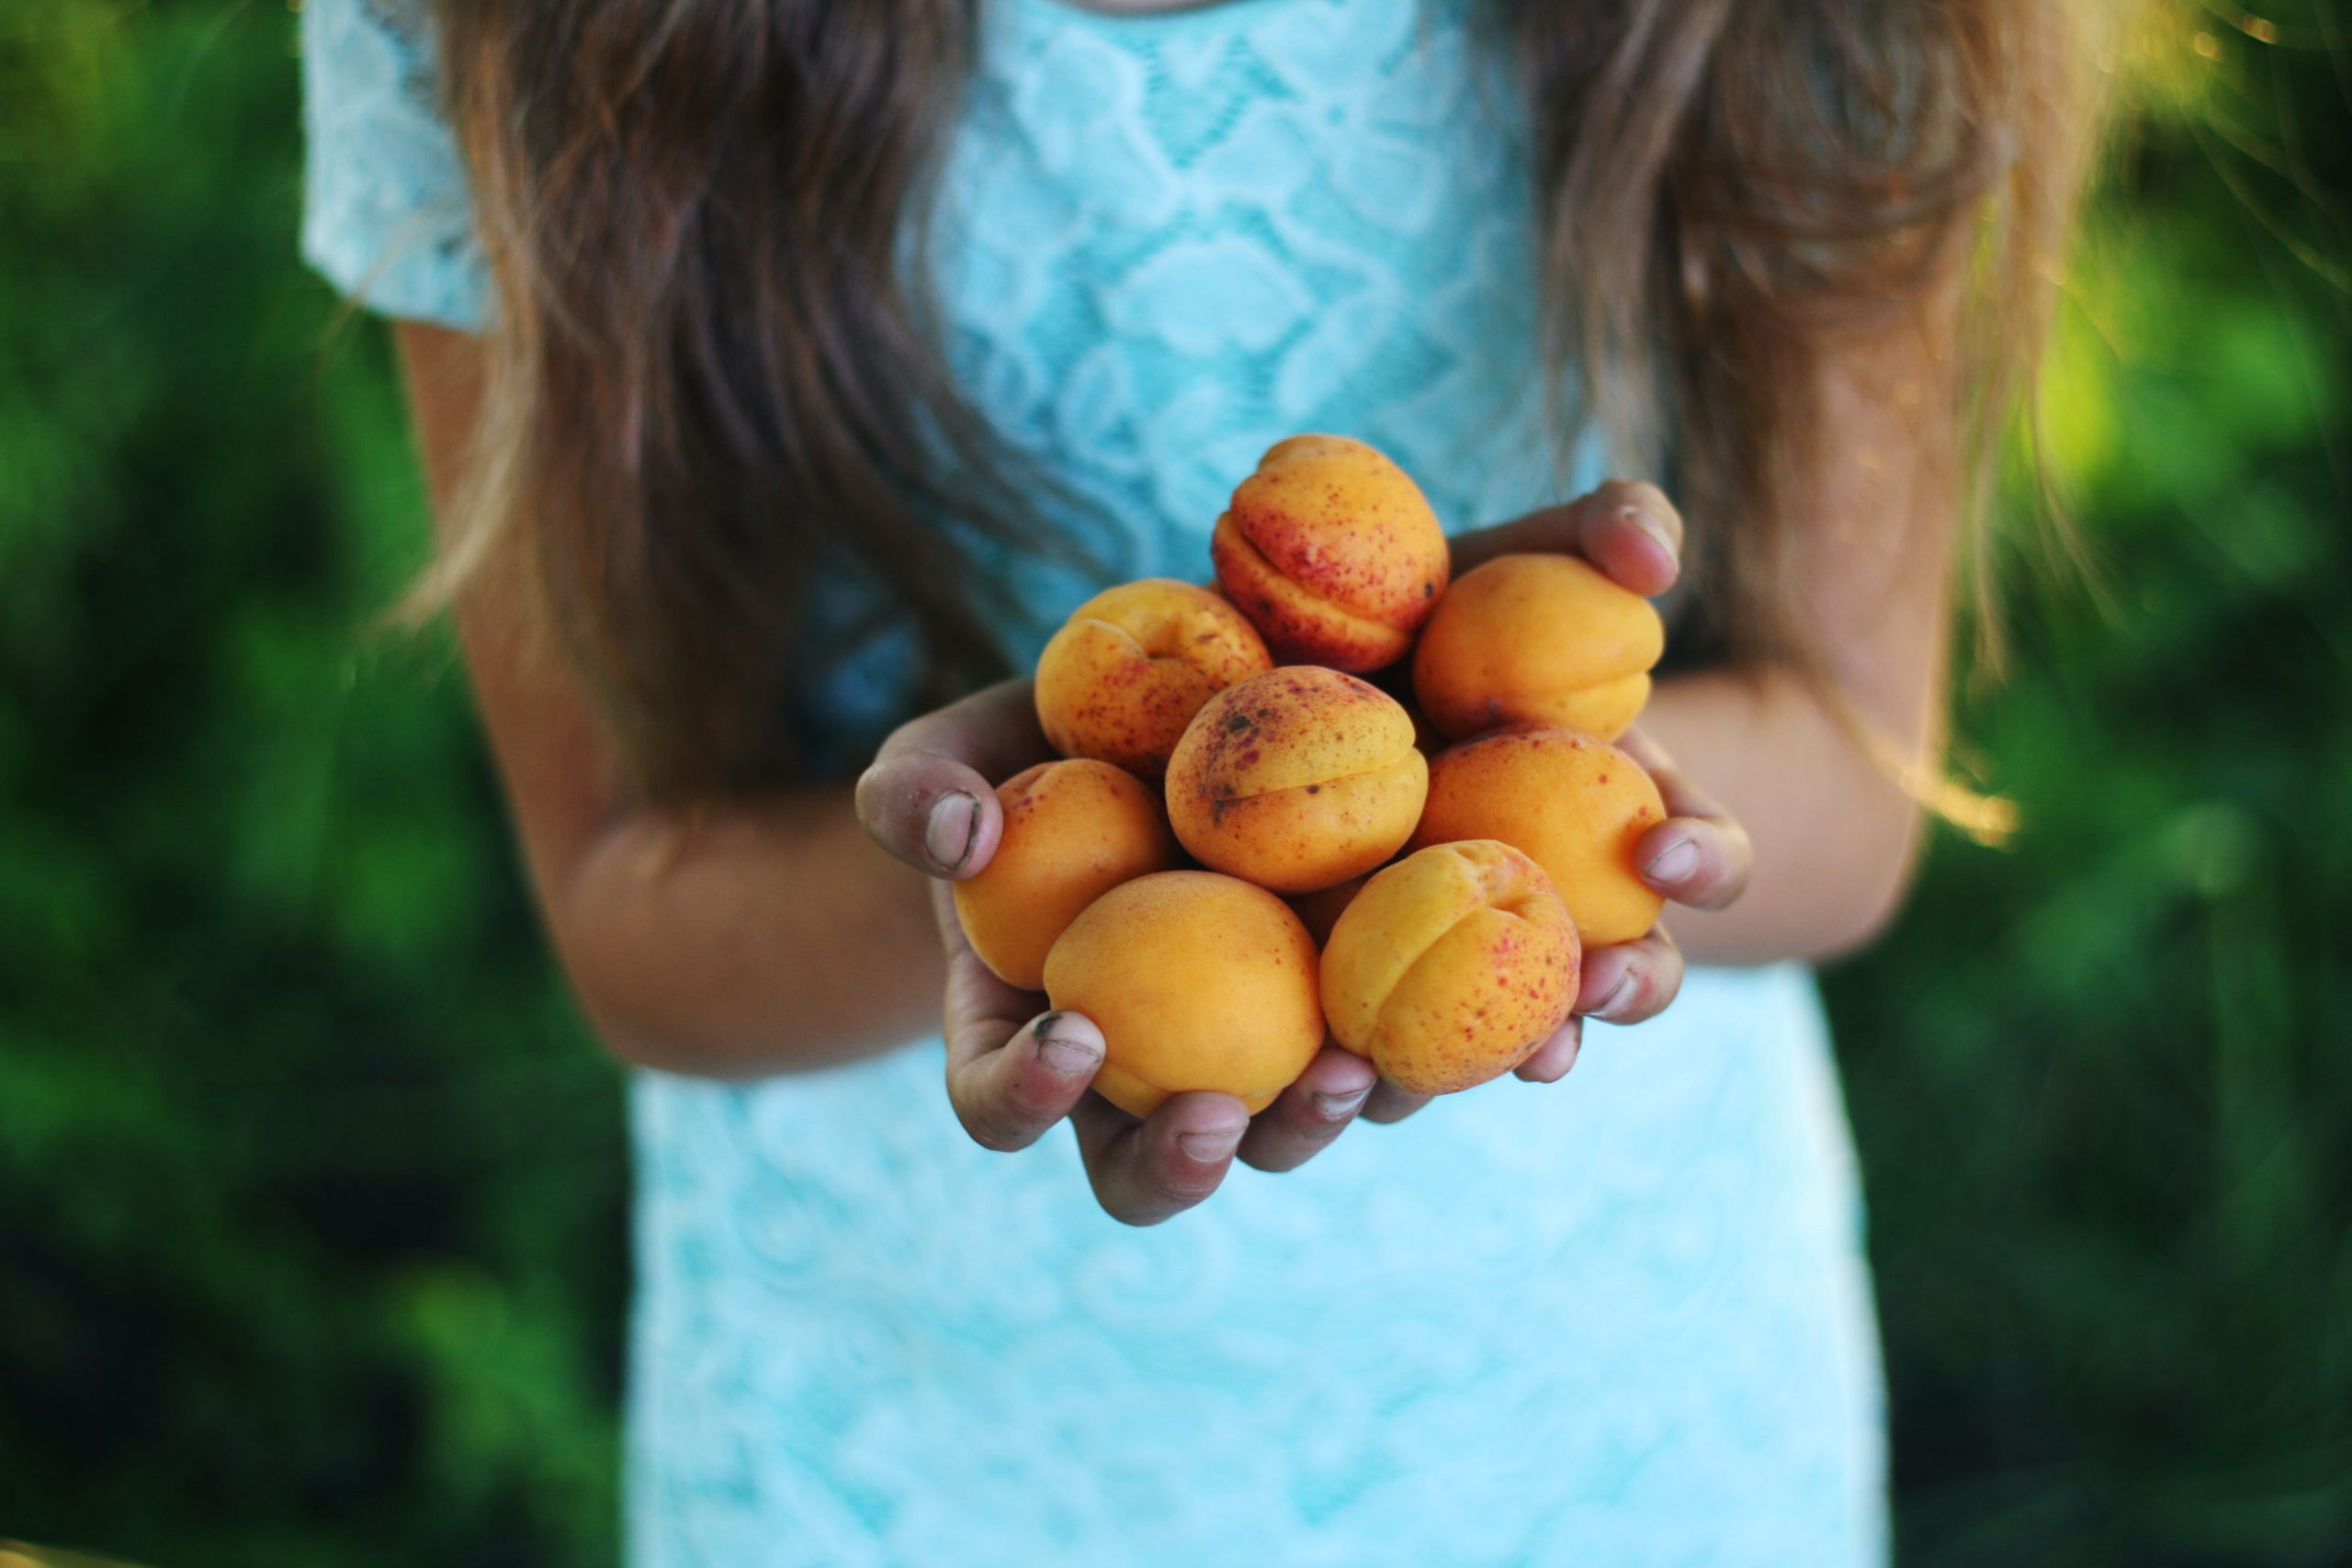 Girl with hands full of peaches